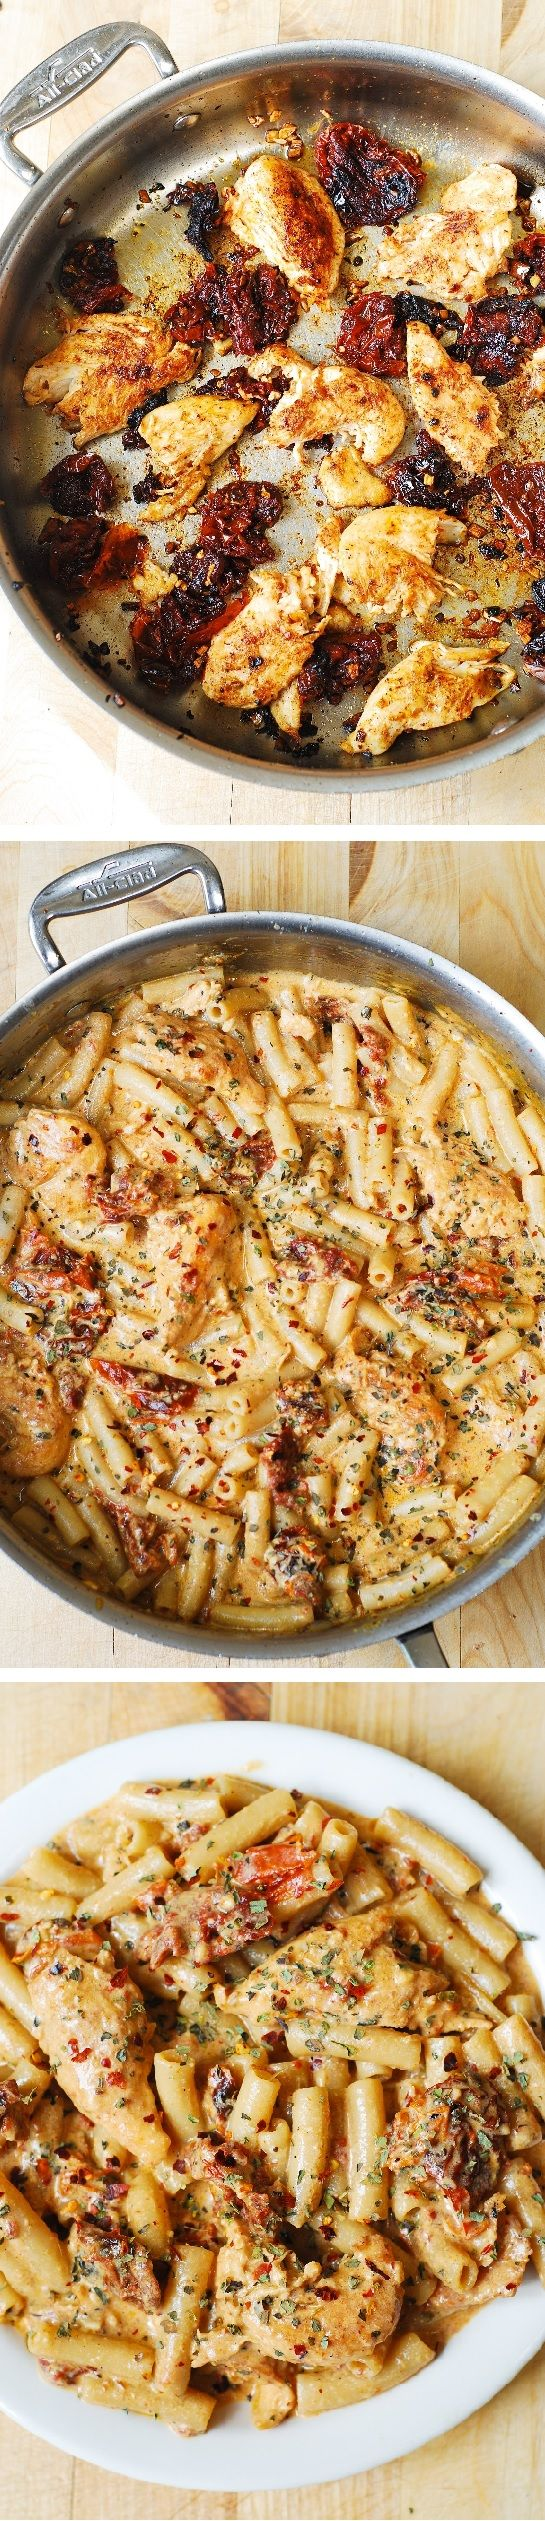 recipes with chicken tenderloins and rice - recipes ...